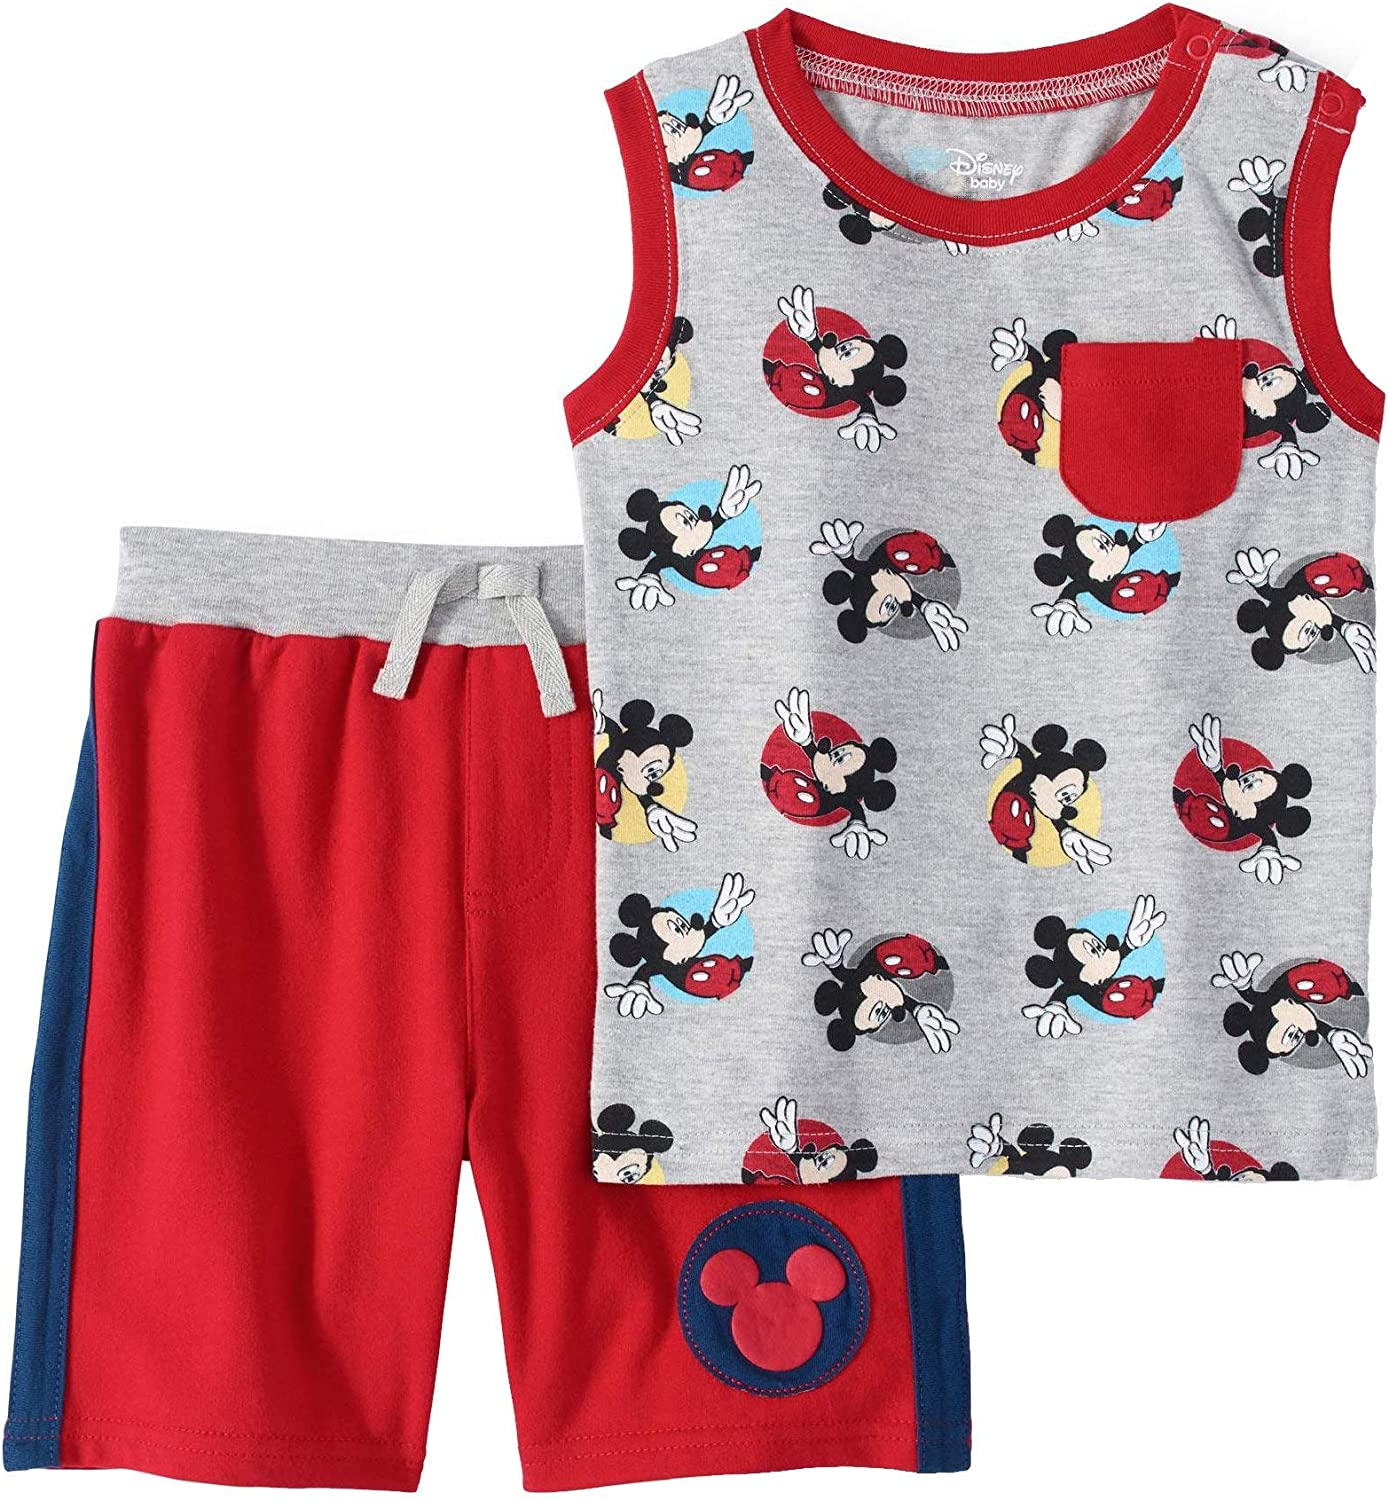 Disney Mickey Mouse Baby Boys Tank Top and Shorts Outfit Set